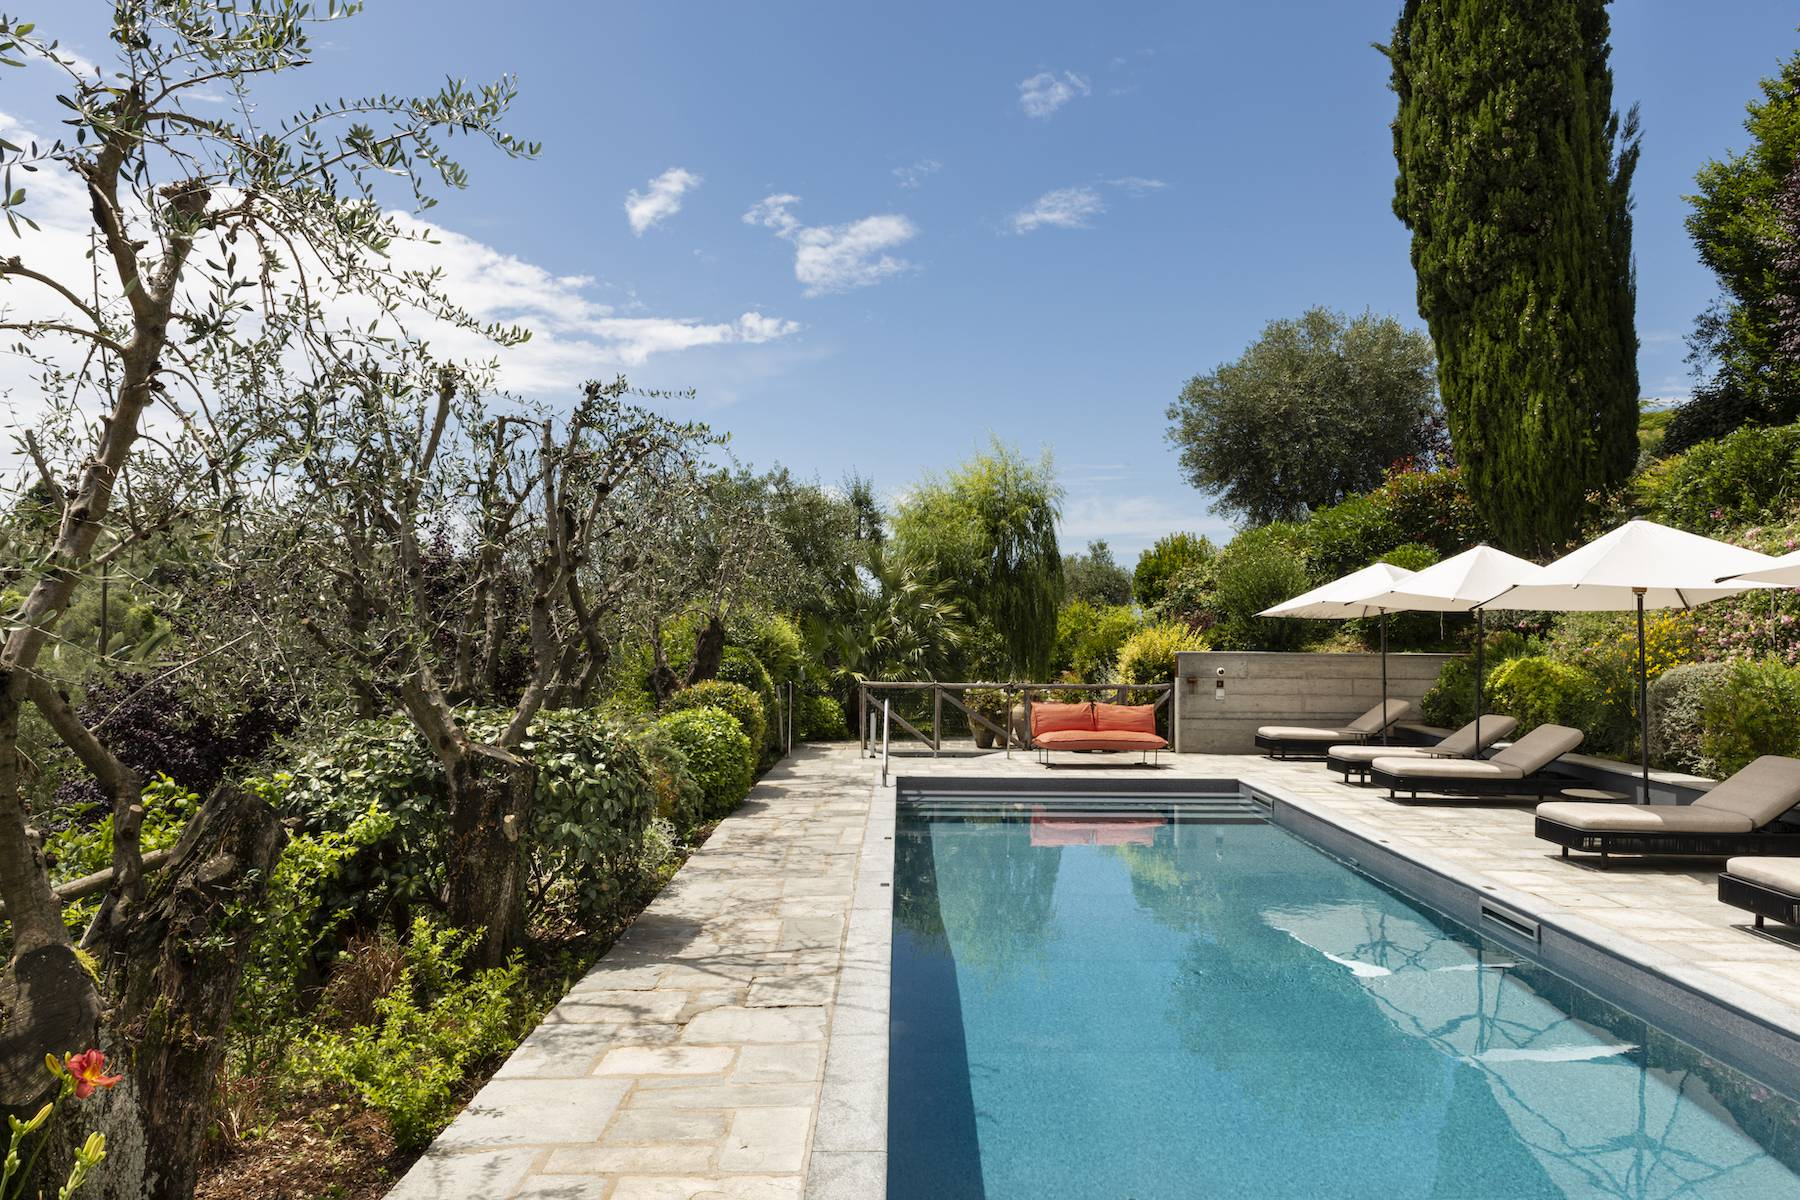 Luxury Boutique Hotel on the hills around Lucca - 4